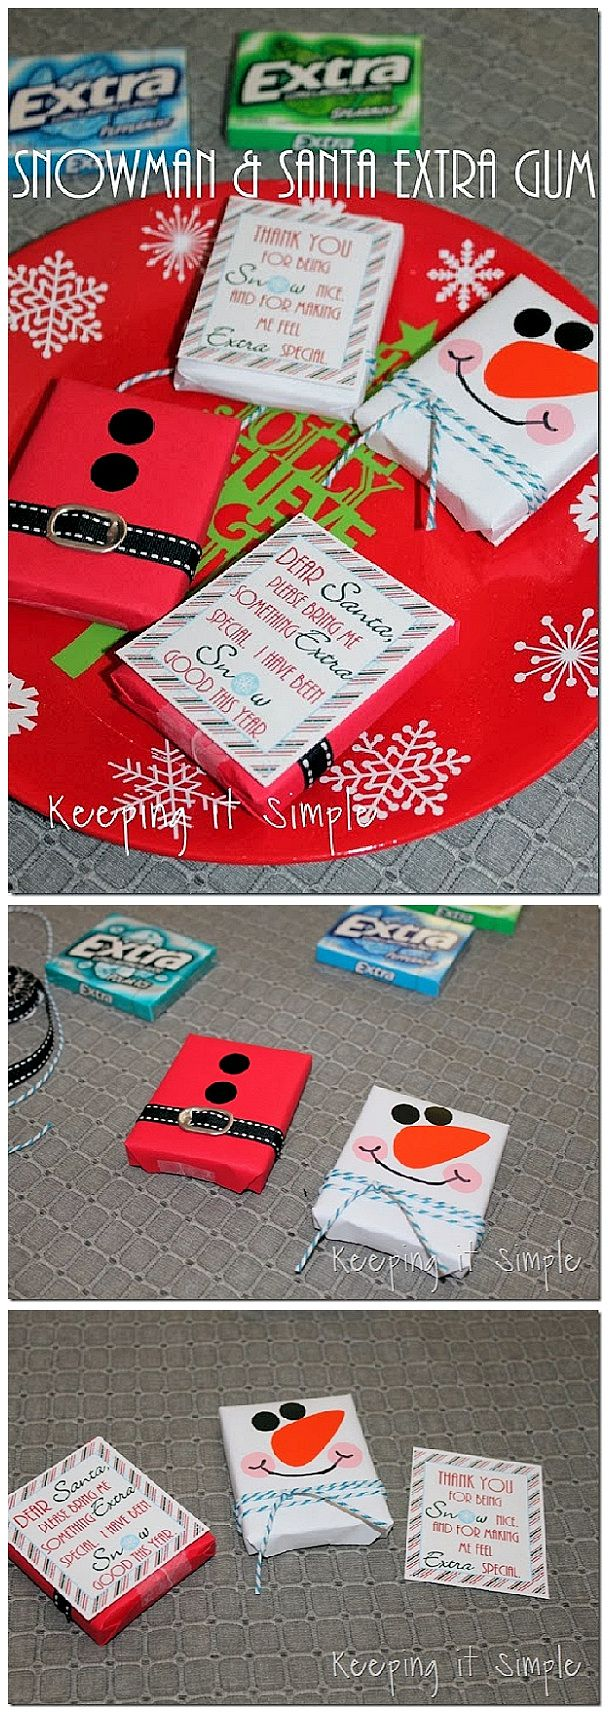 Adorable Santa and Snowman FREE Printables for Extra Gum - easy and sweet Christmas Gift Idea for Teachers, Neighbors and Friends! | Keeping it Simple Crafts